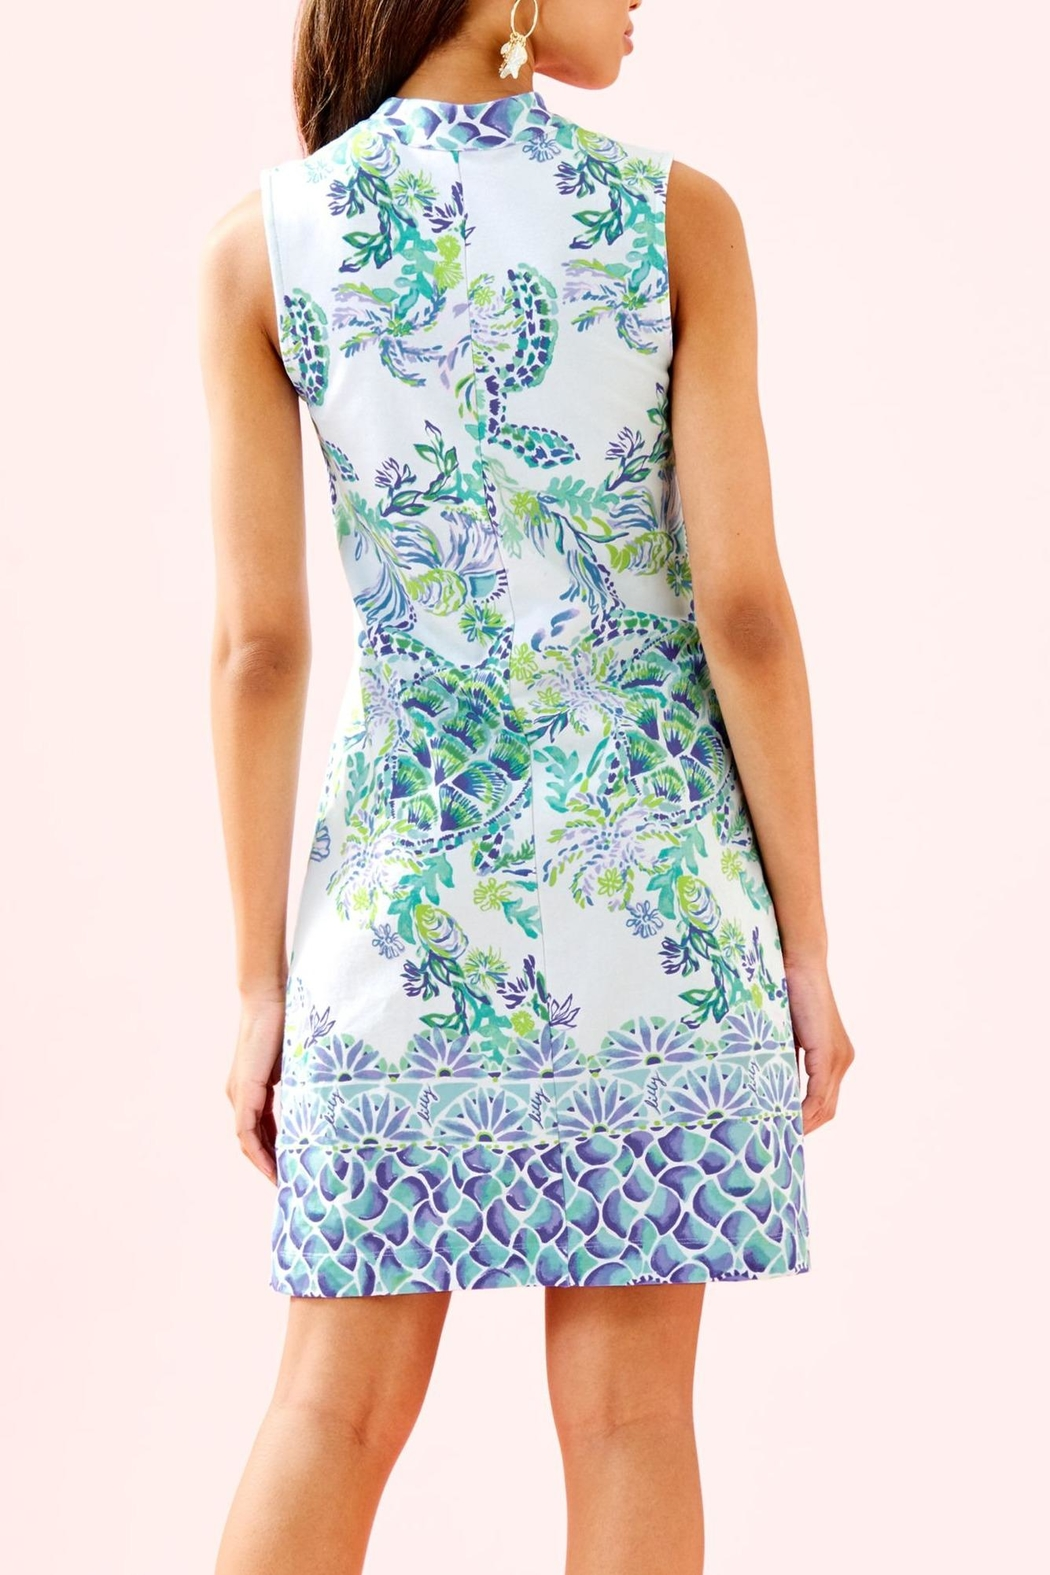 00f277200dc Lilly Pulitzer Larsen Shift Dress from Sandestin Golf and Beach ...